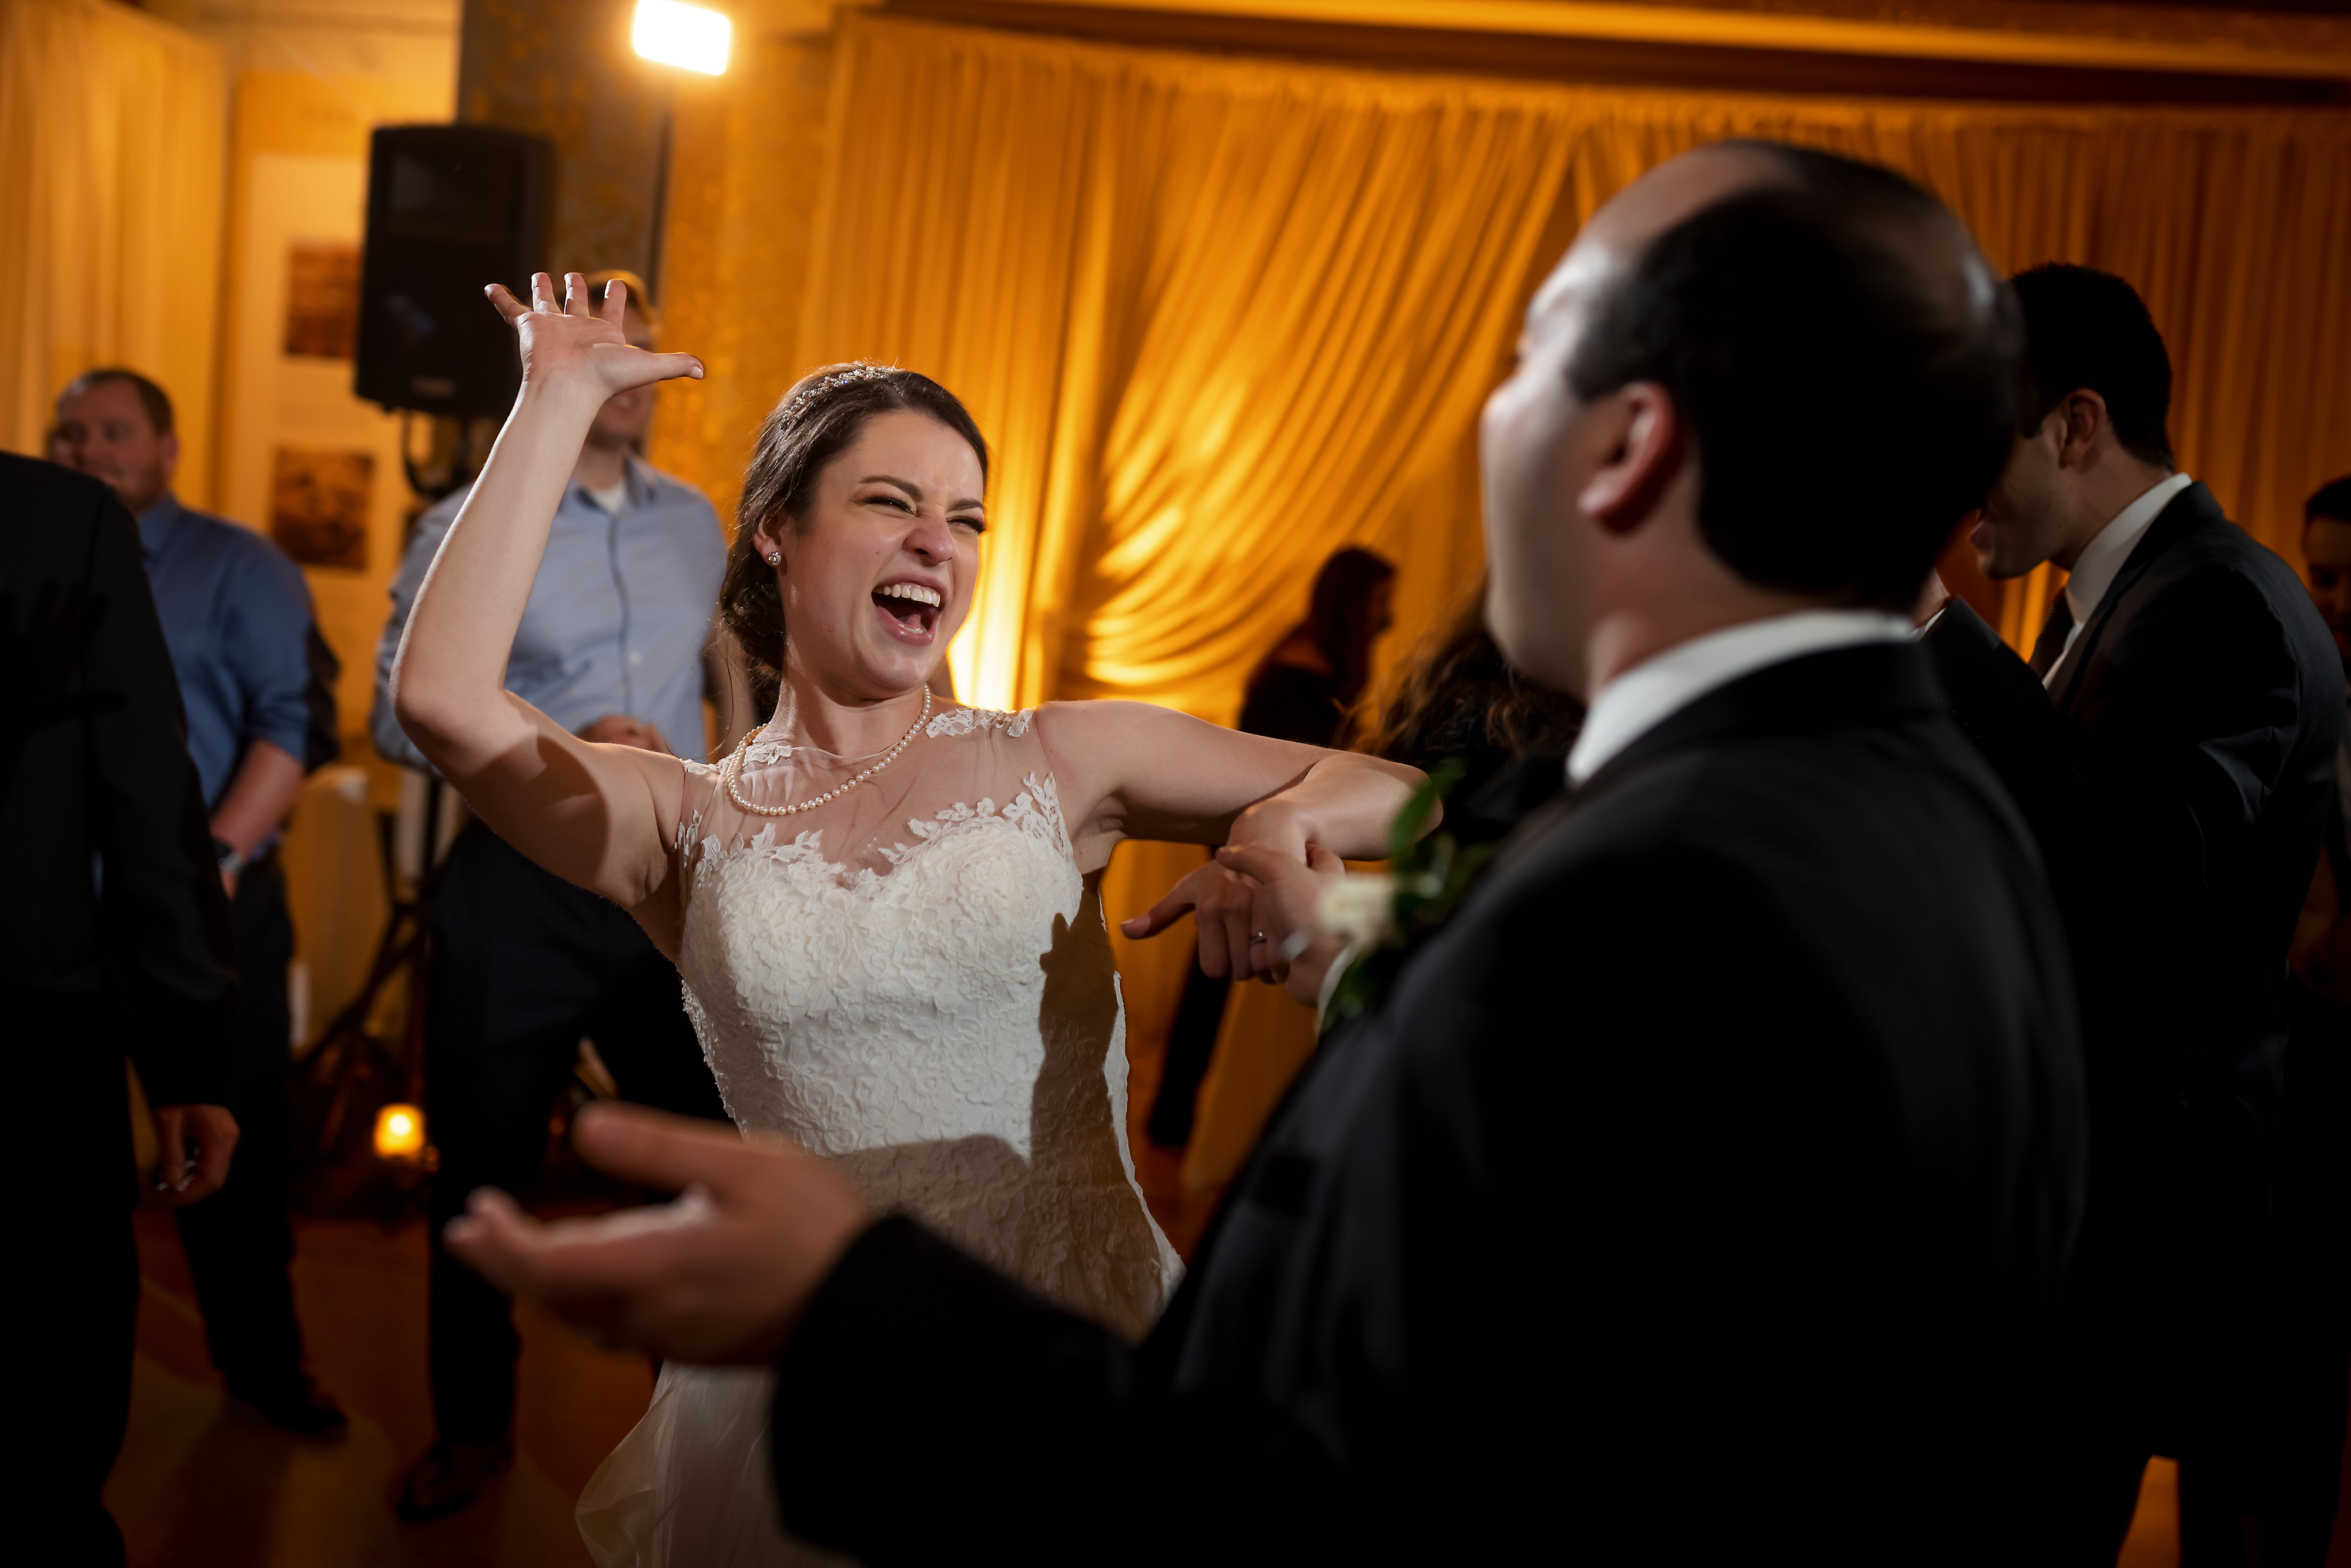 Wedding guests dance with couple during wedding reception at the Rookery Building in Chicago